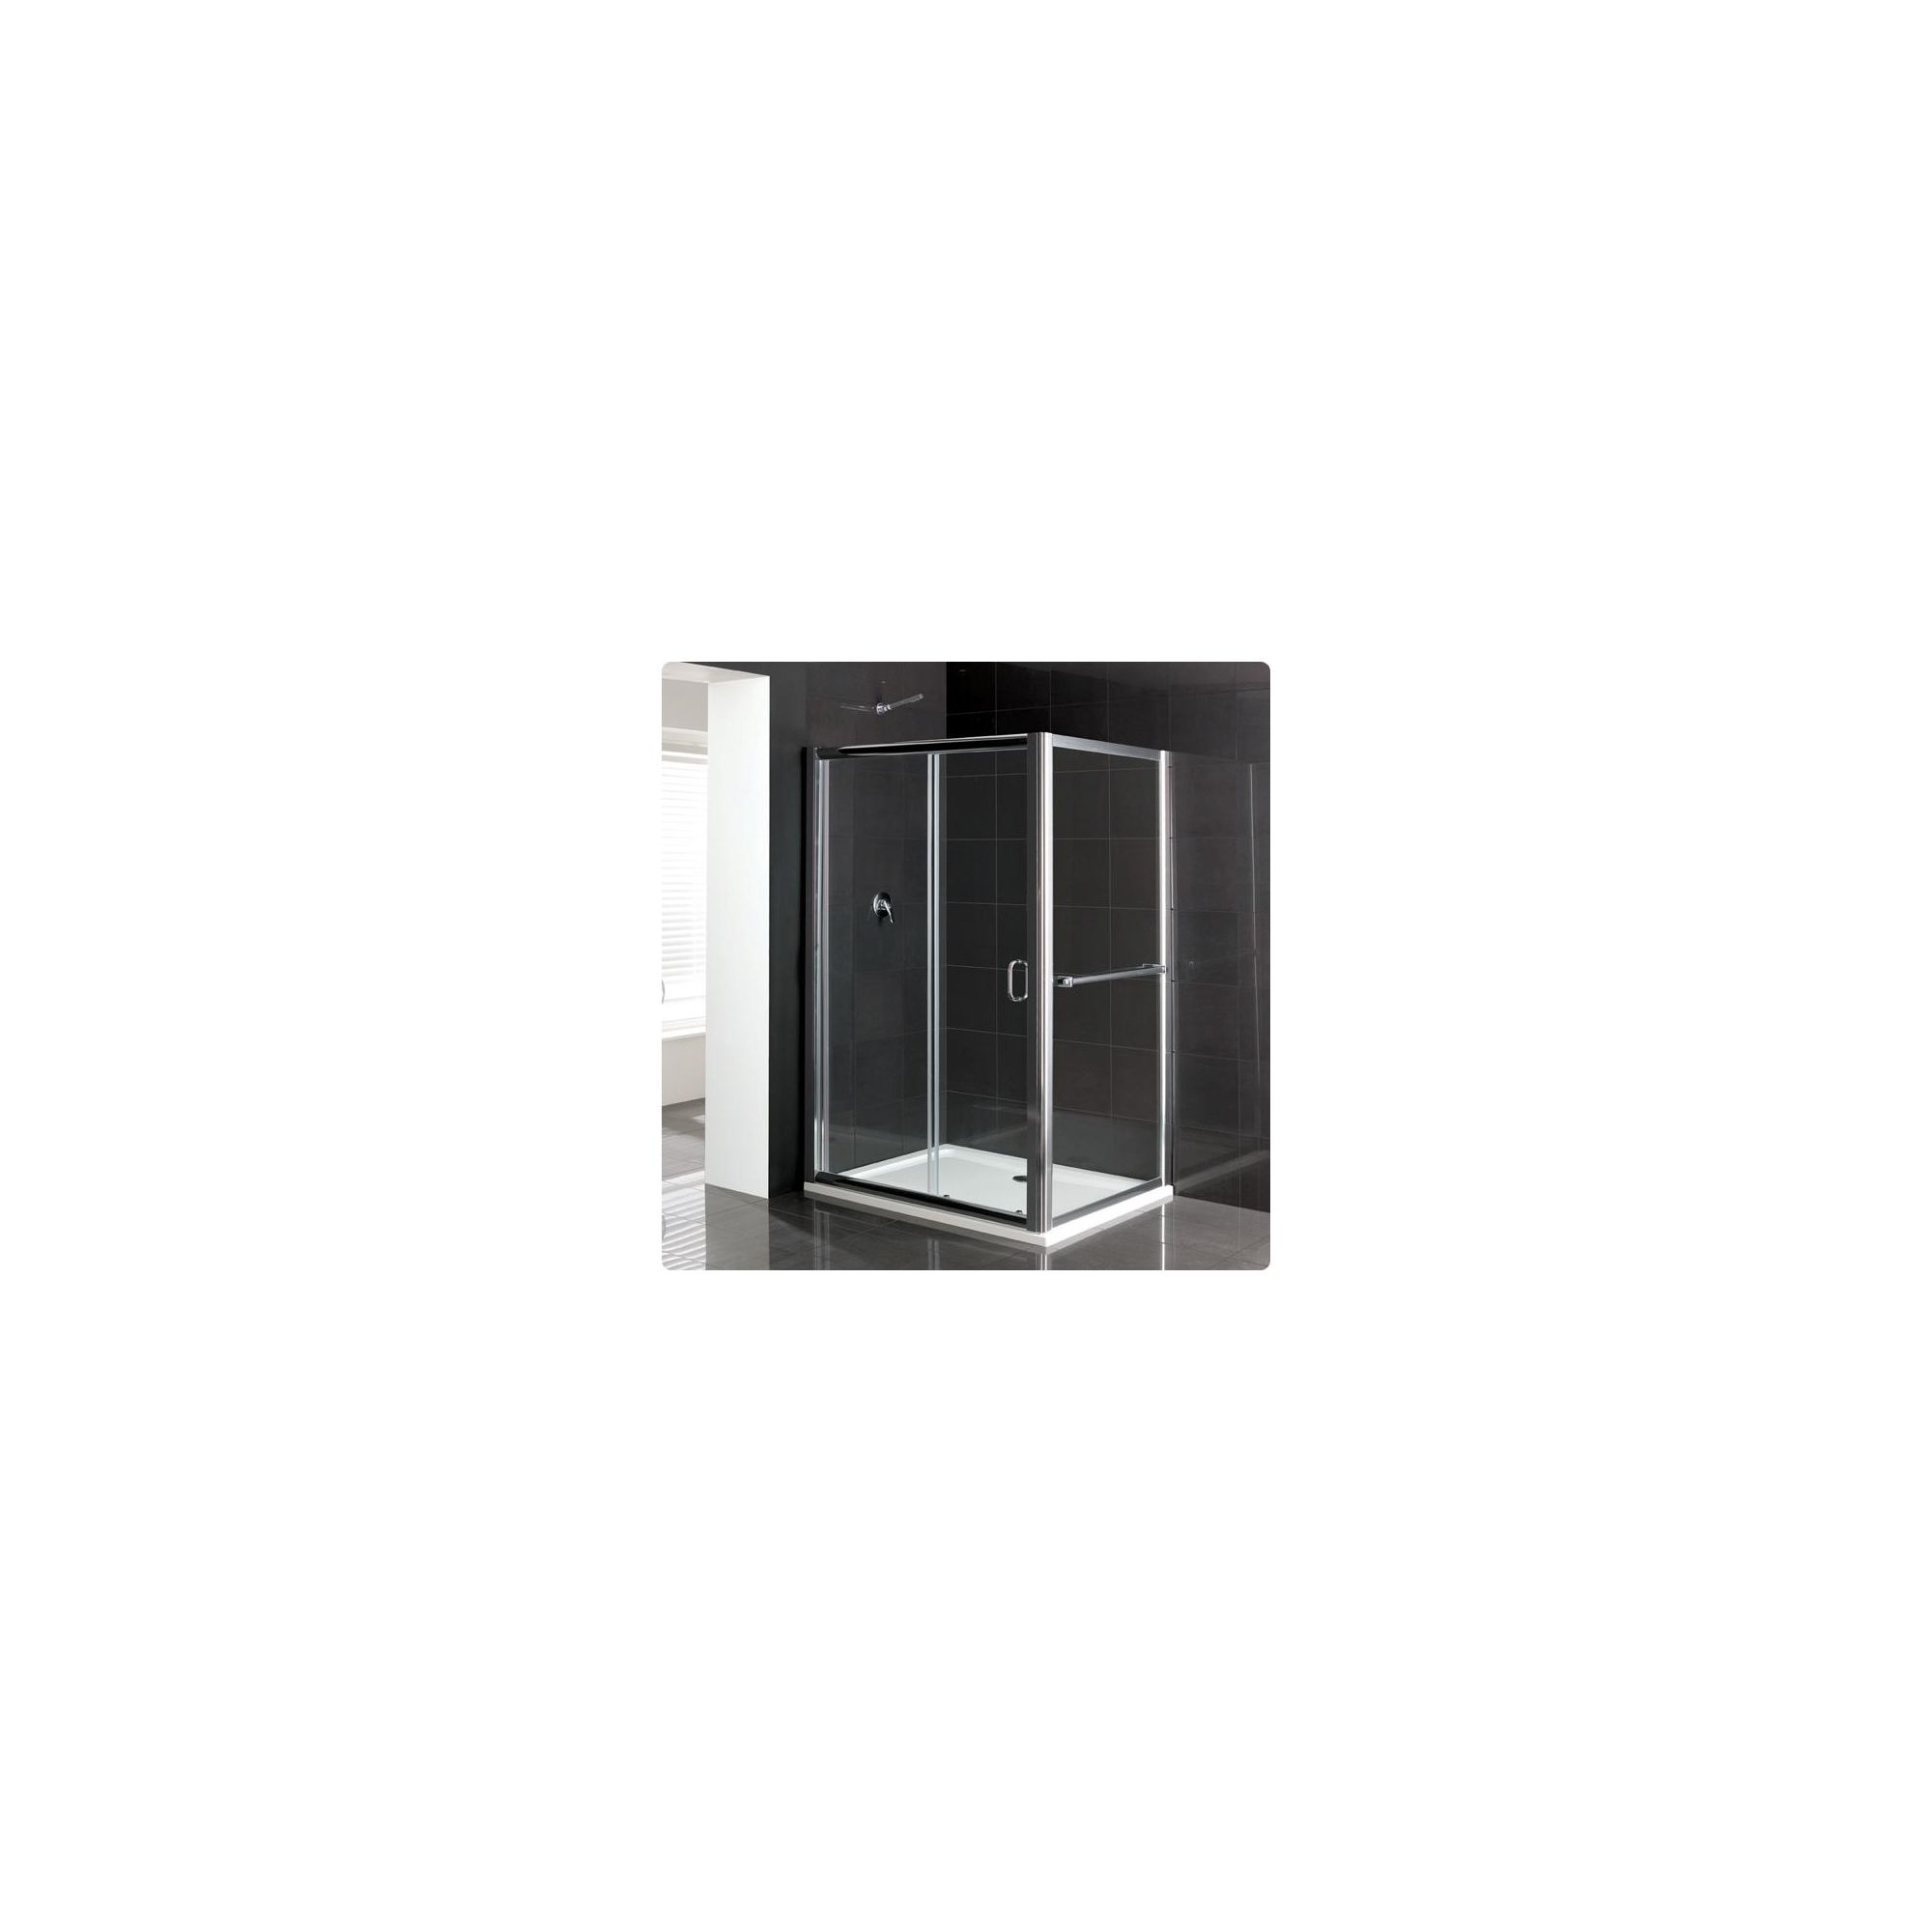 Duchy Elite Silver Sliding Door Shower Enclosure with Towel Rail, 1100mm x 900mm, Standard Tray, 6mm Glass at Tesco Direct